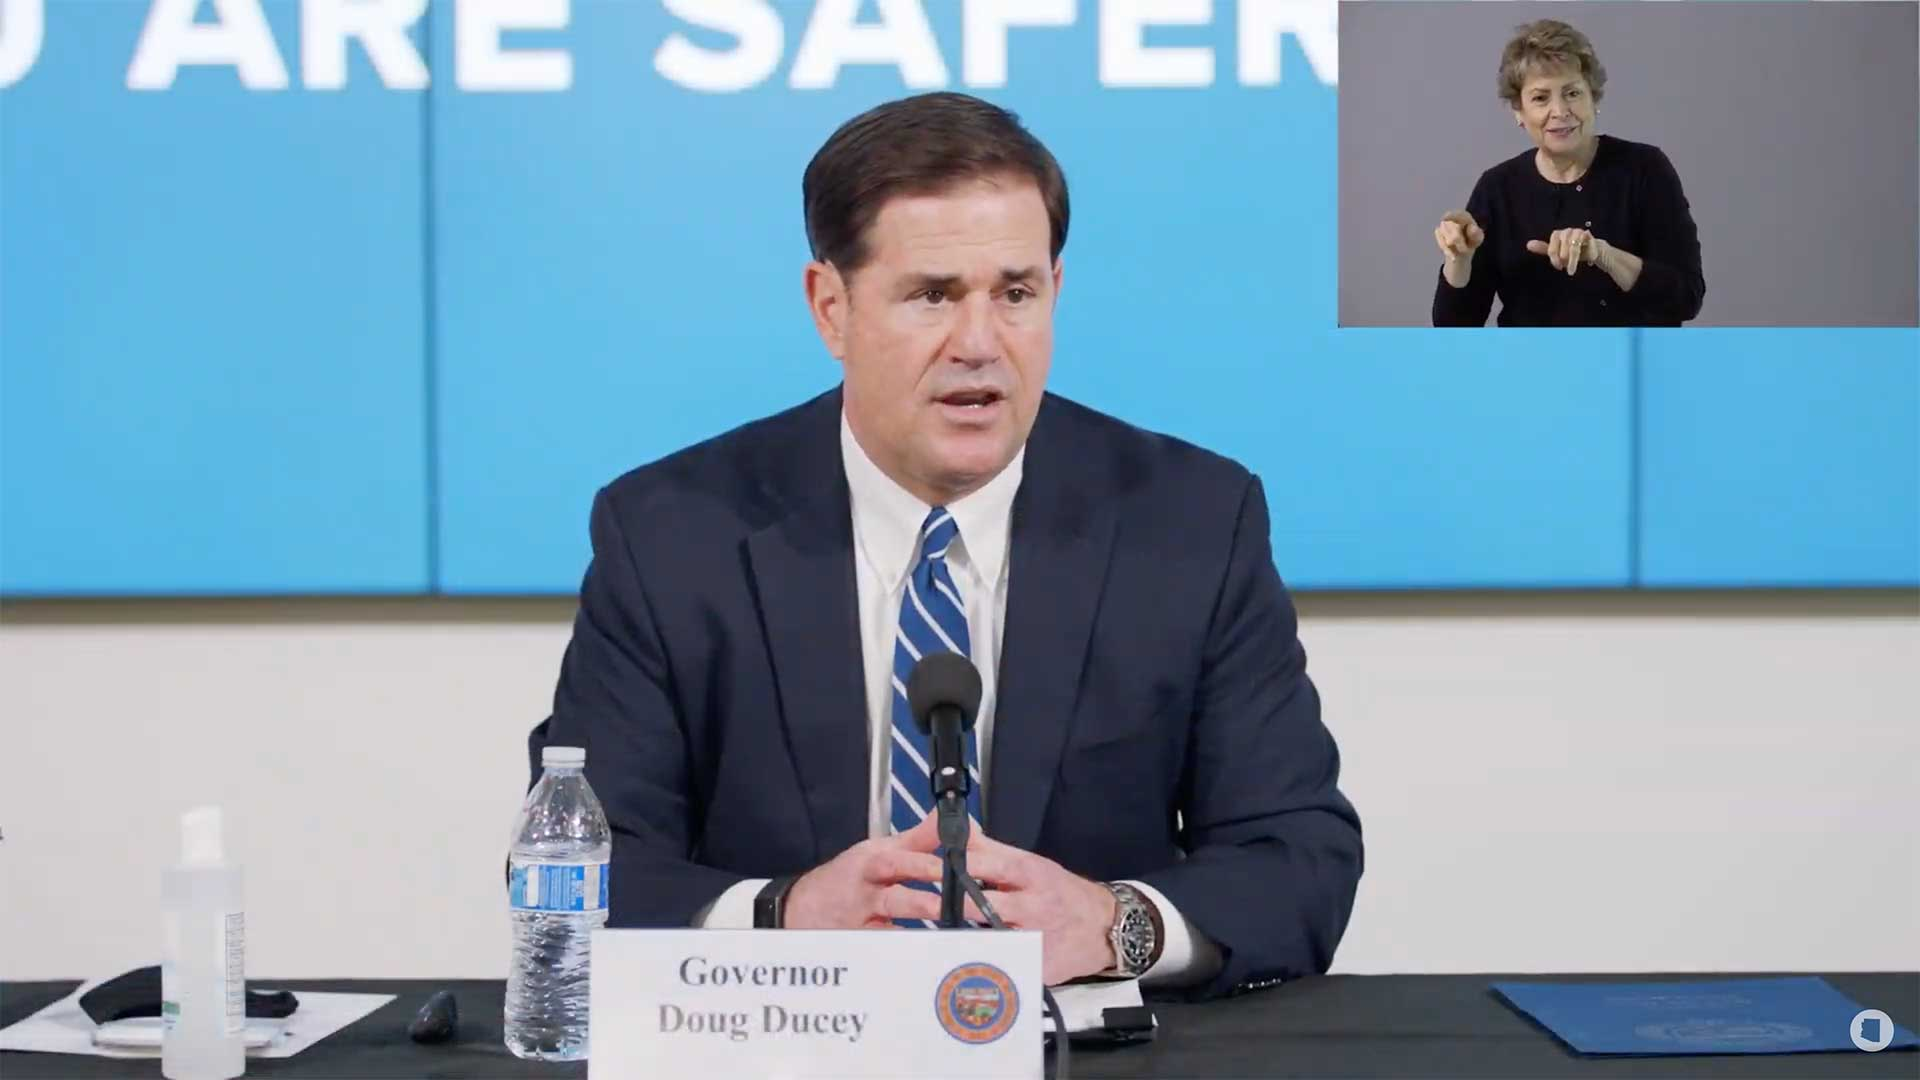 Arizona. Gov. Doug Ducey at a July 16 briefing on the state's COVID-19 response.